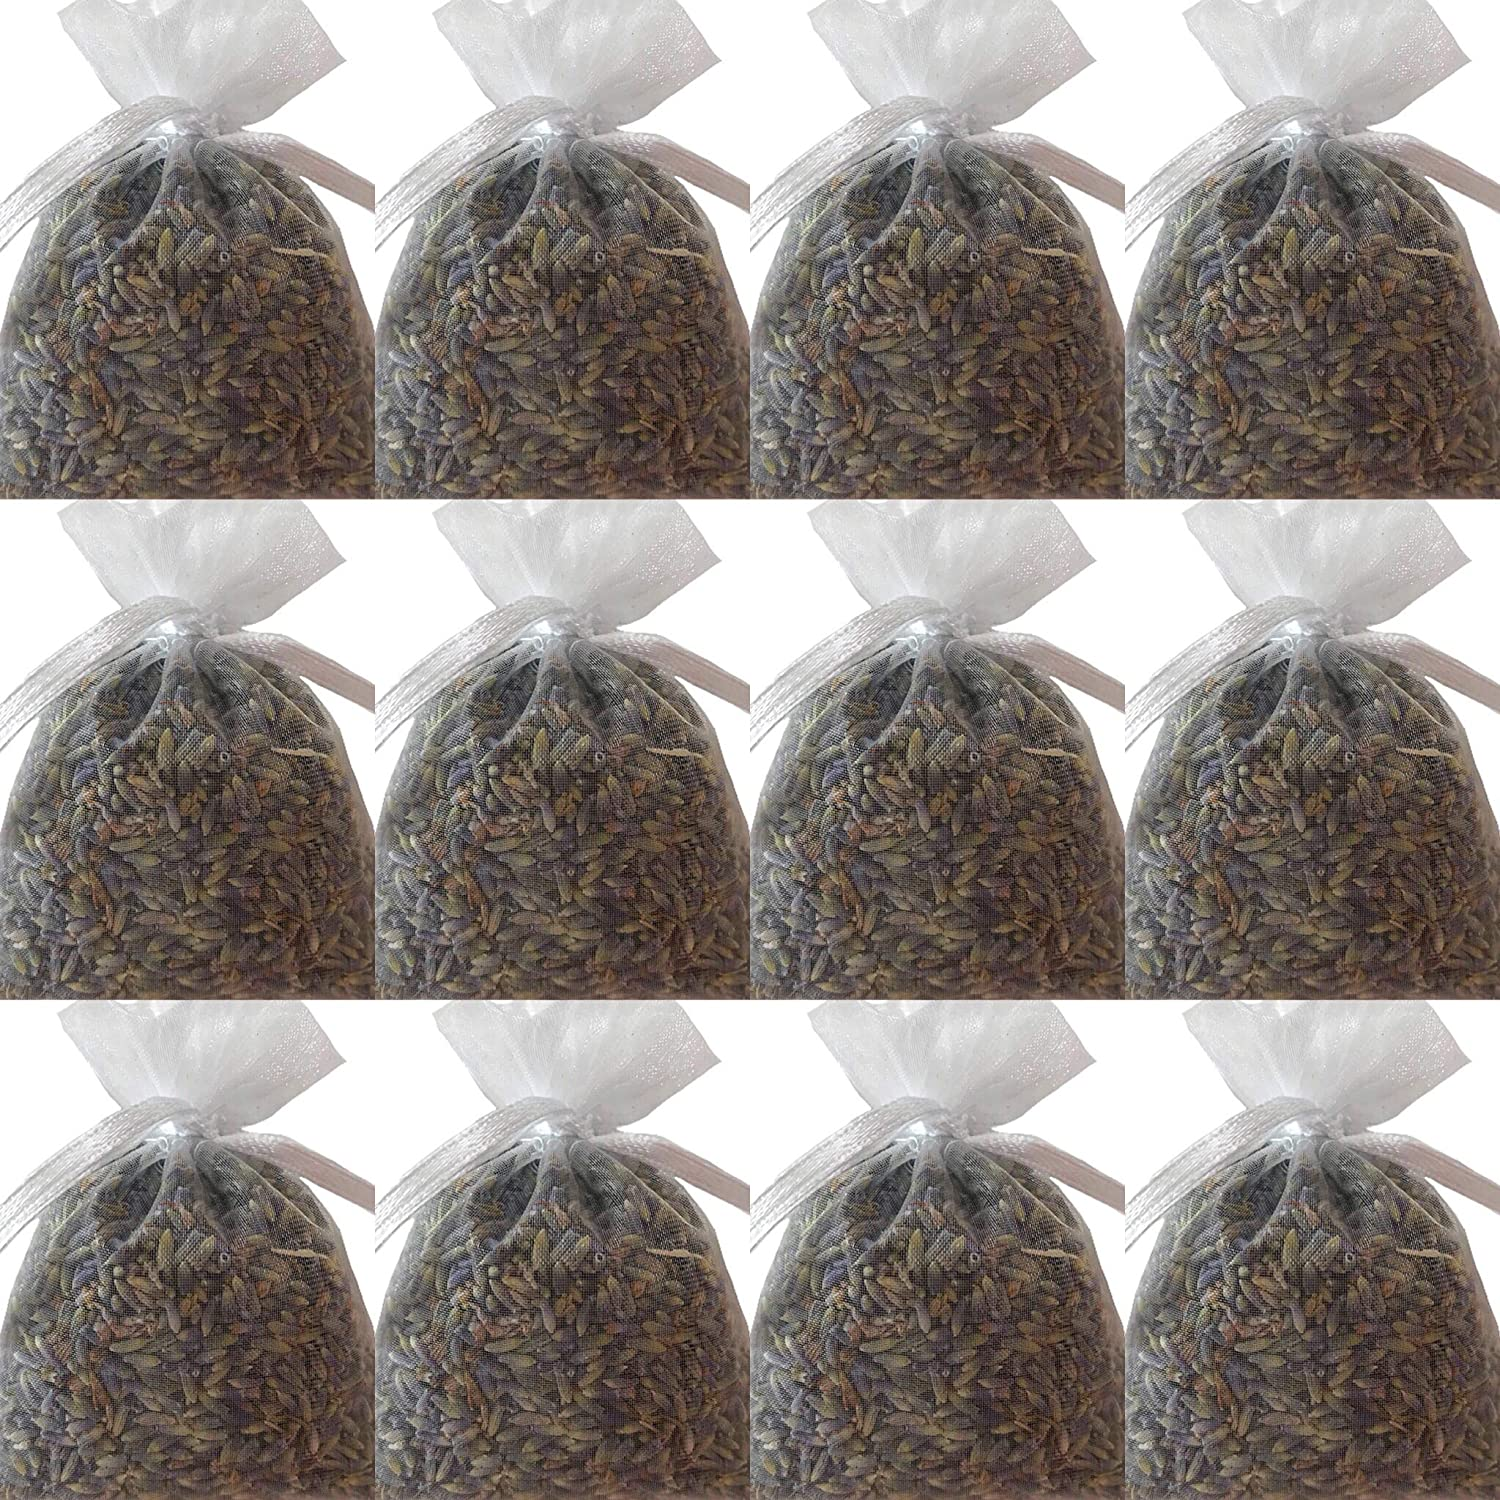 3/' x 3/' Organza Sachets hand-filled with French Lavender Buds Zziggysgal 12-pack